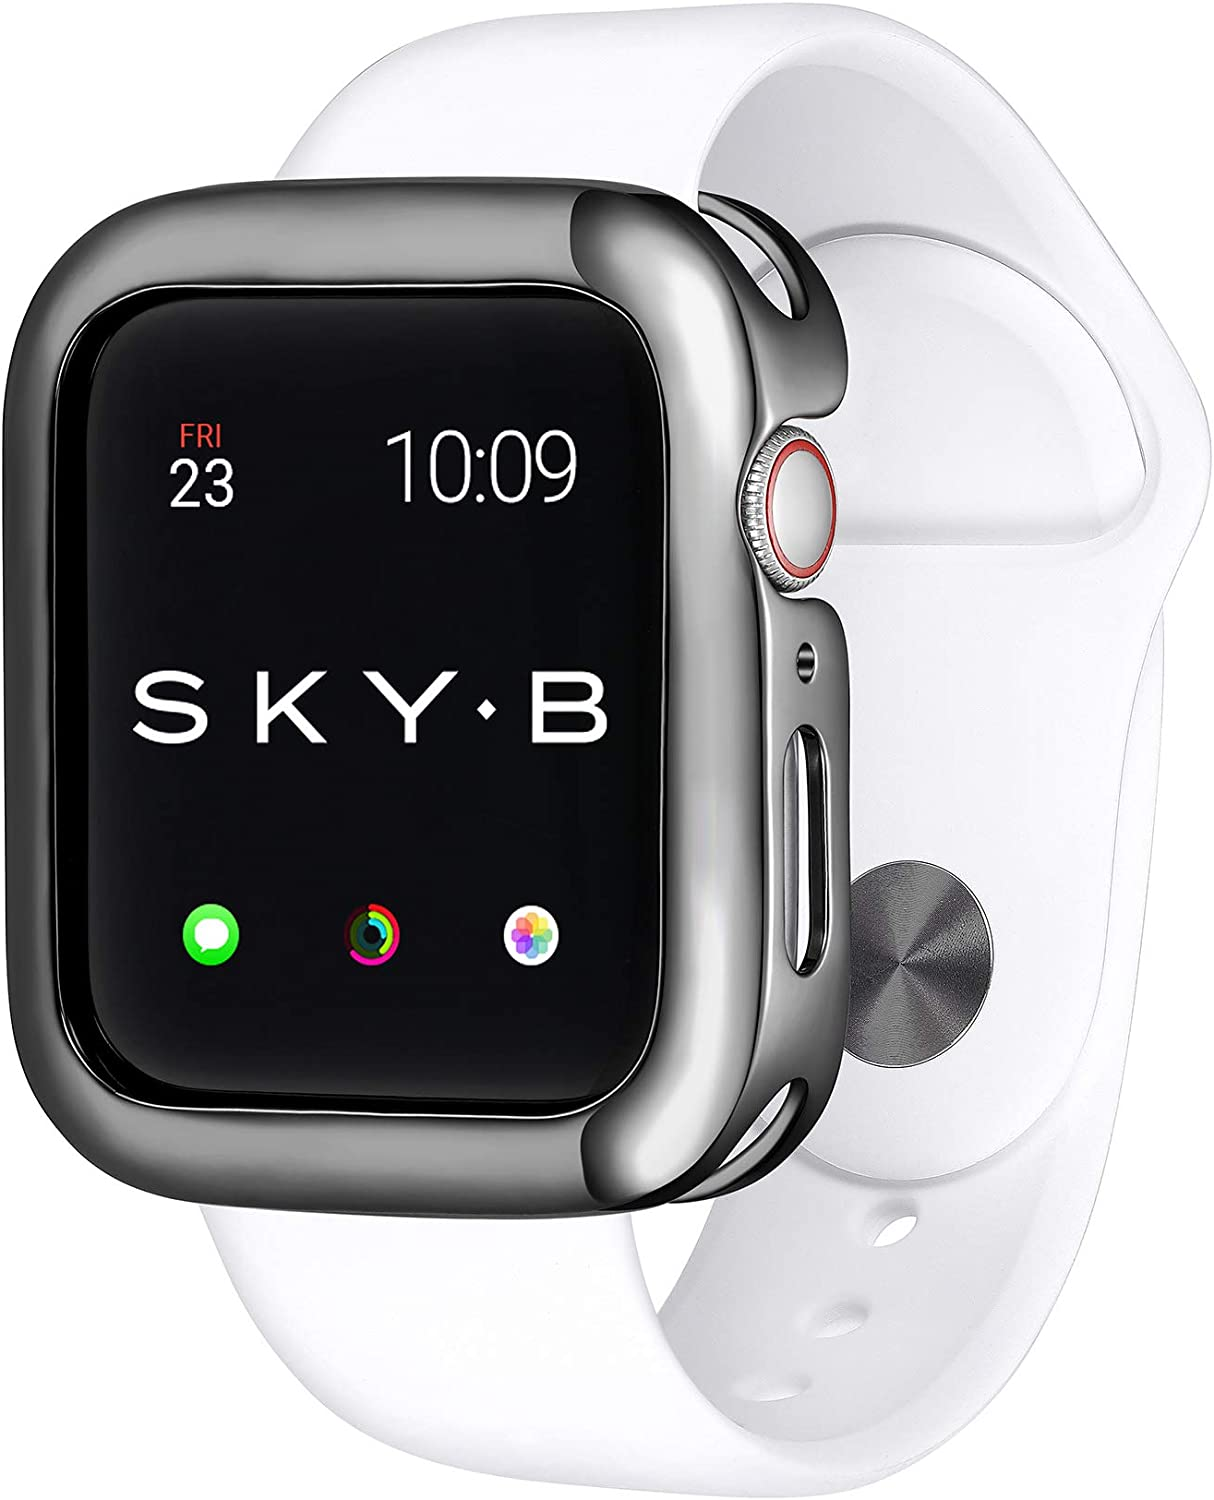 SKYB Minimalist Gunmetal Protective Jewelry Case for Apple Watch Series 1, 2, 3, 4, 5 Devices - 38mm